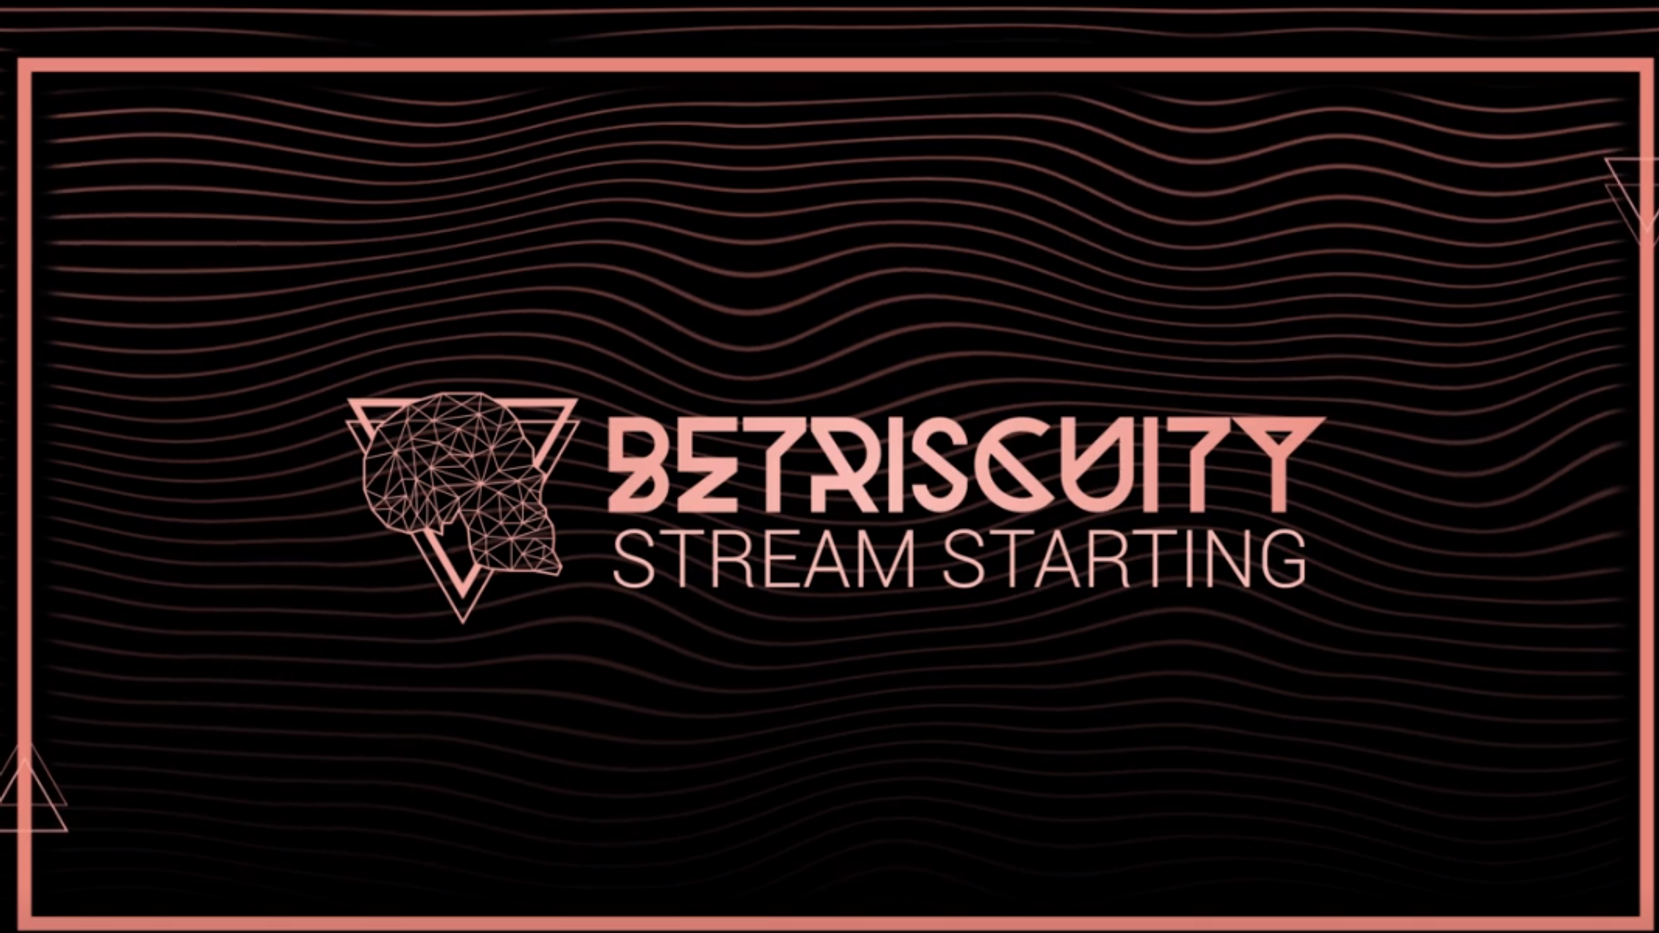 Betriscuity Twitch Channel